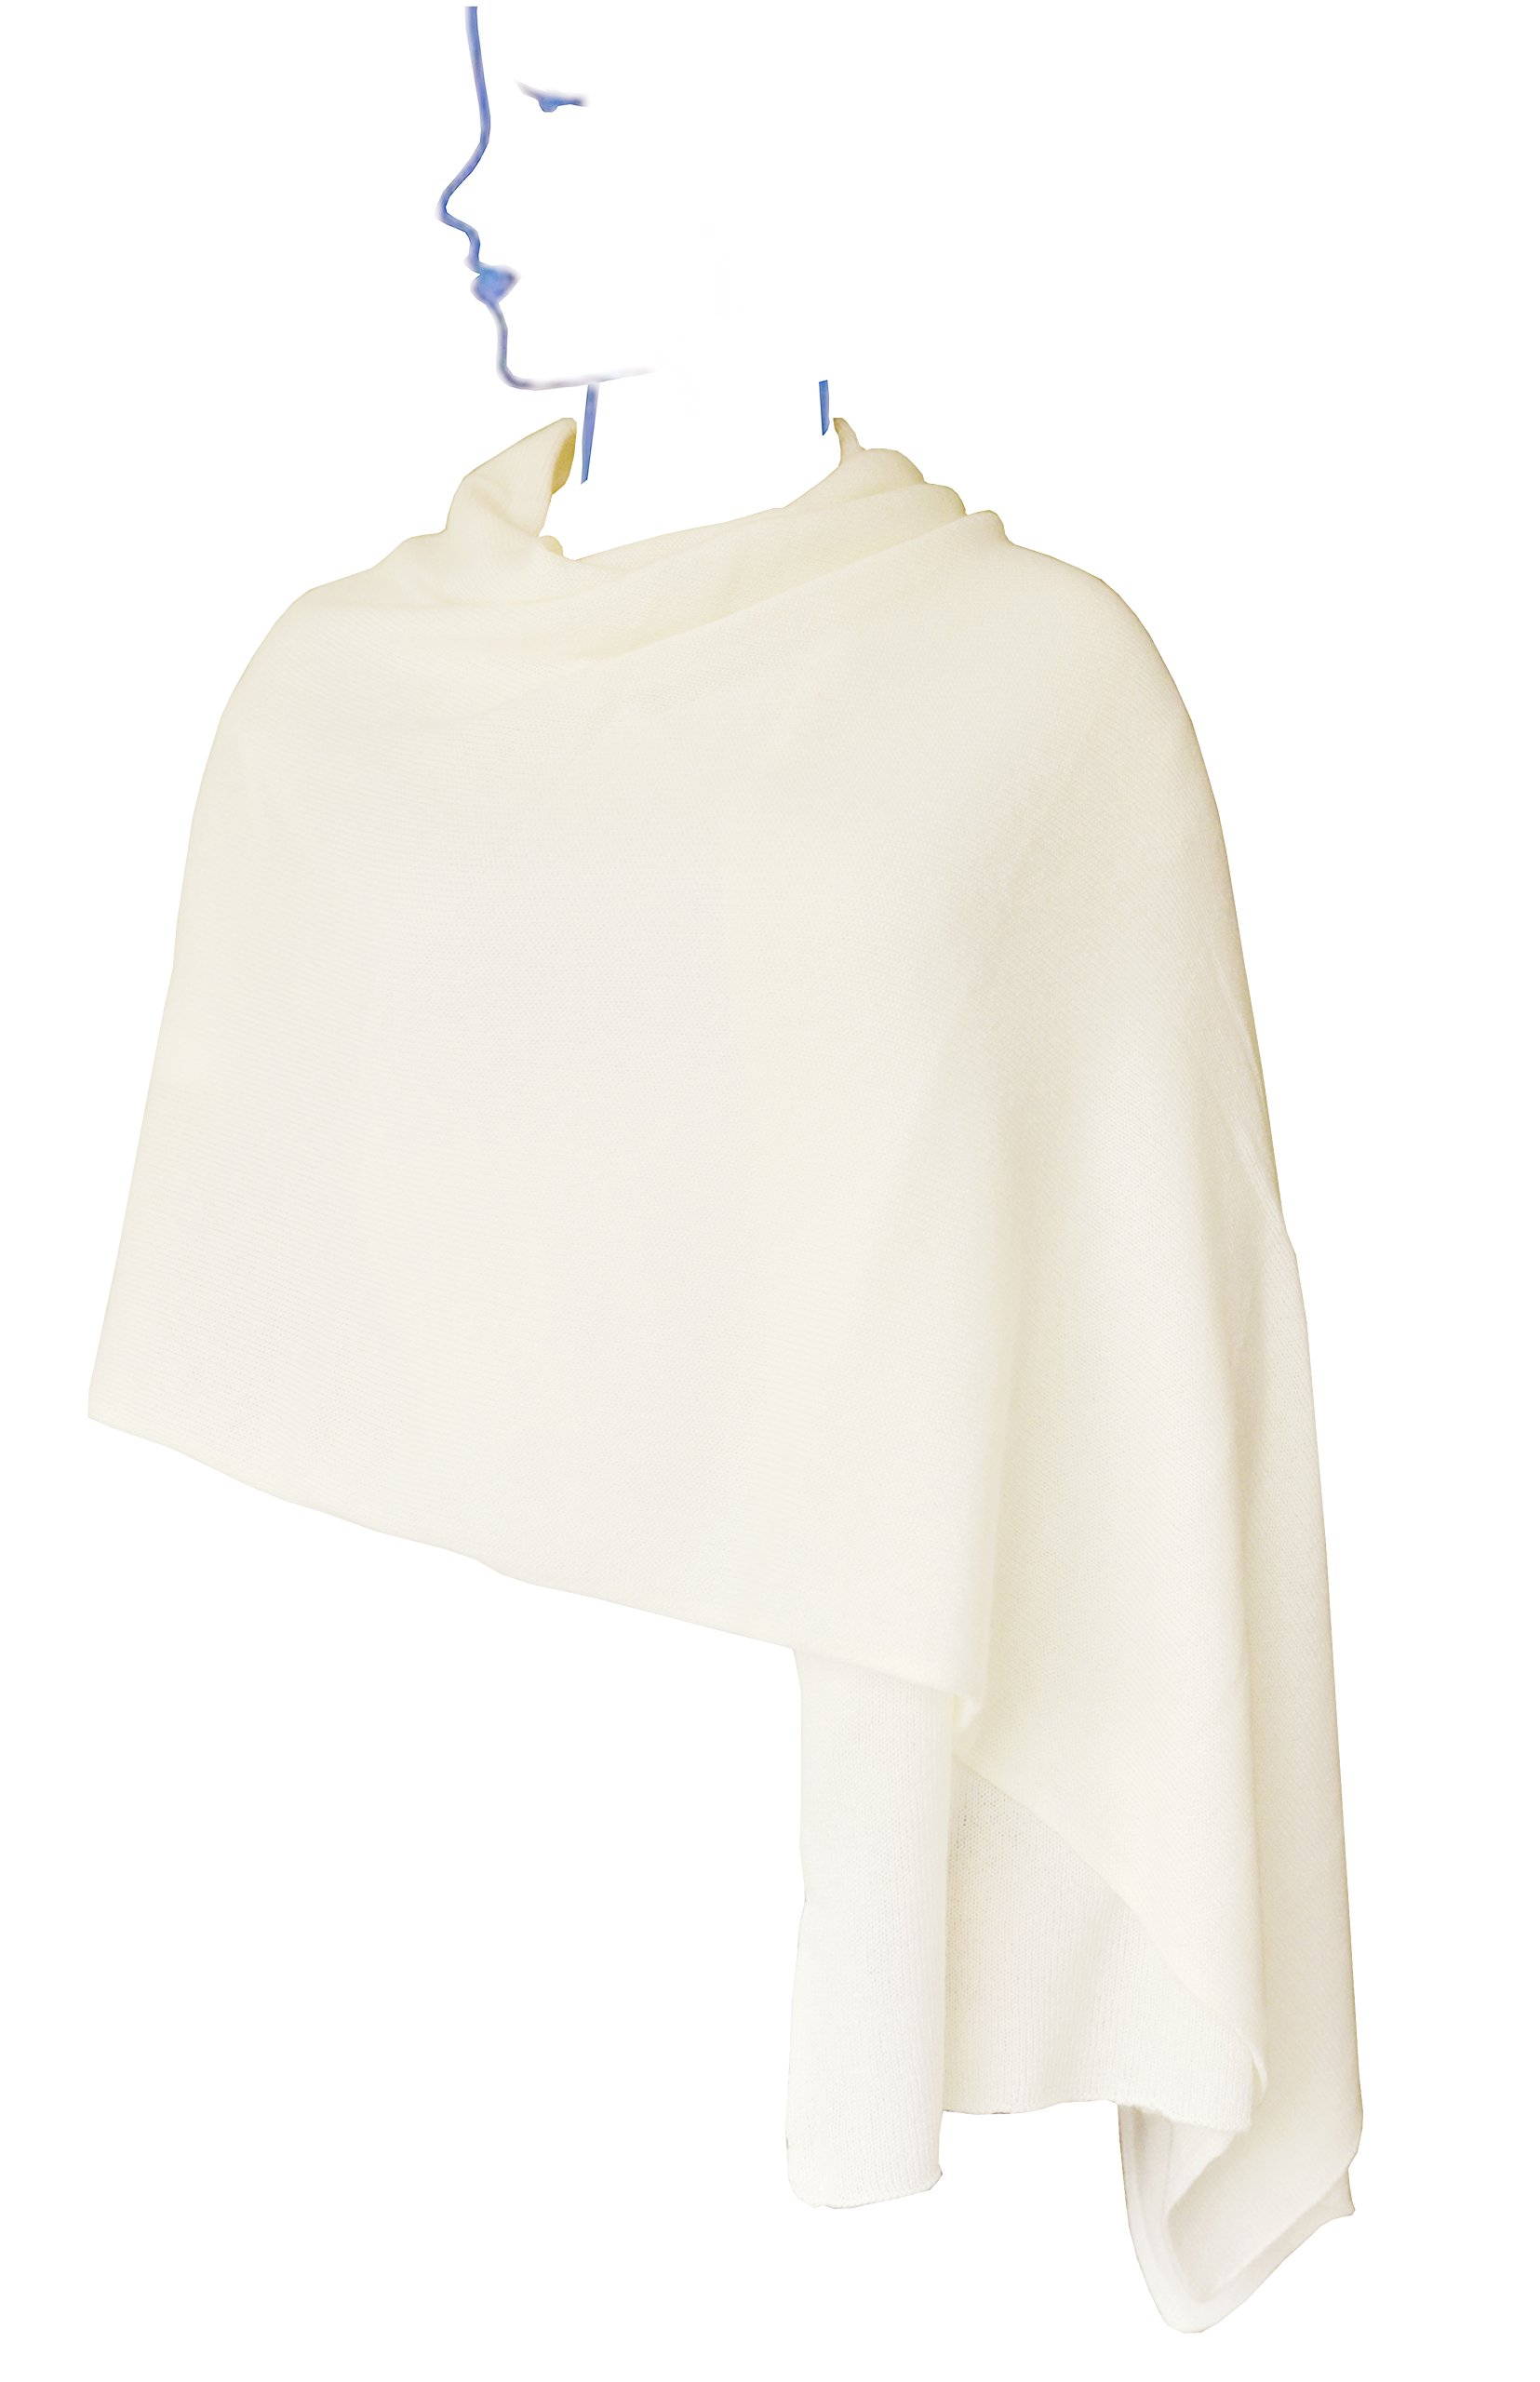 Ellettee, Ivory 100% Cashmere Knitted Scarf Classic Premium Shawl Luxurious Elegant Solid Color Wrap Art Oversized Shawl, Oblong